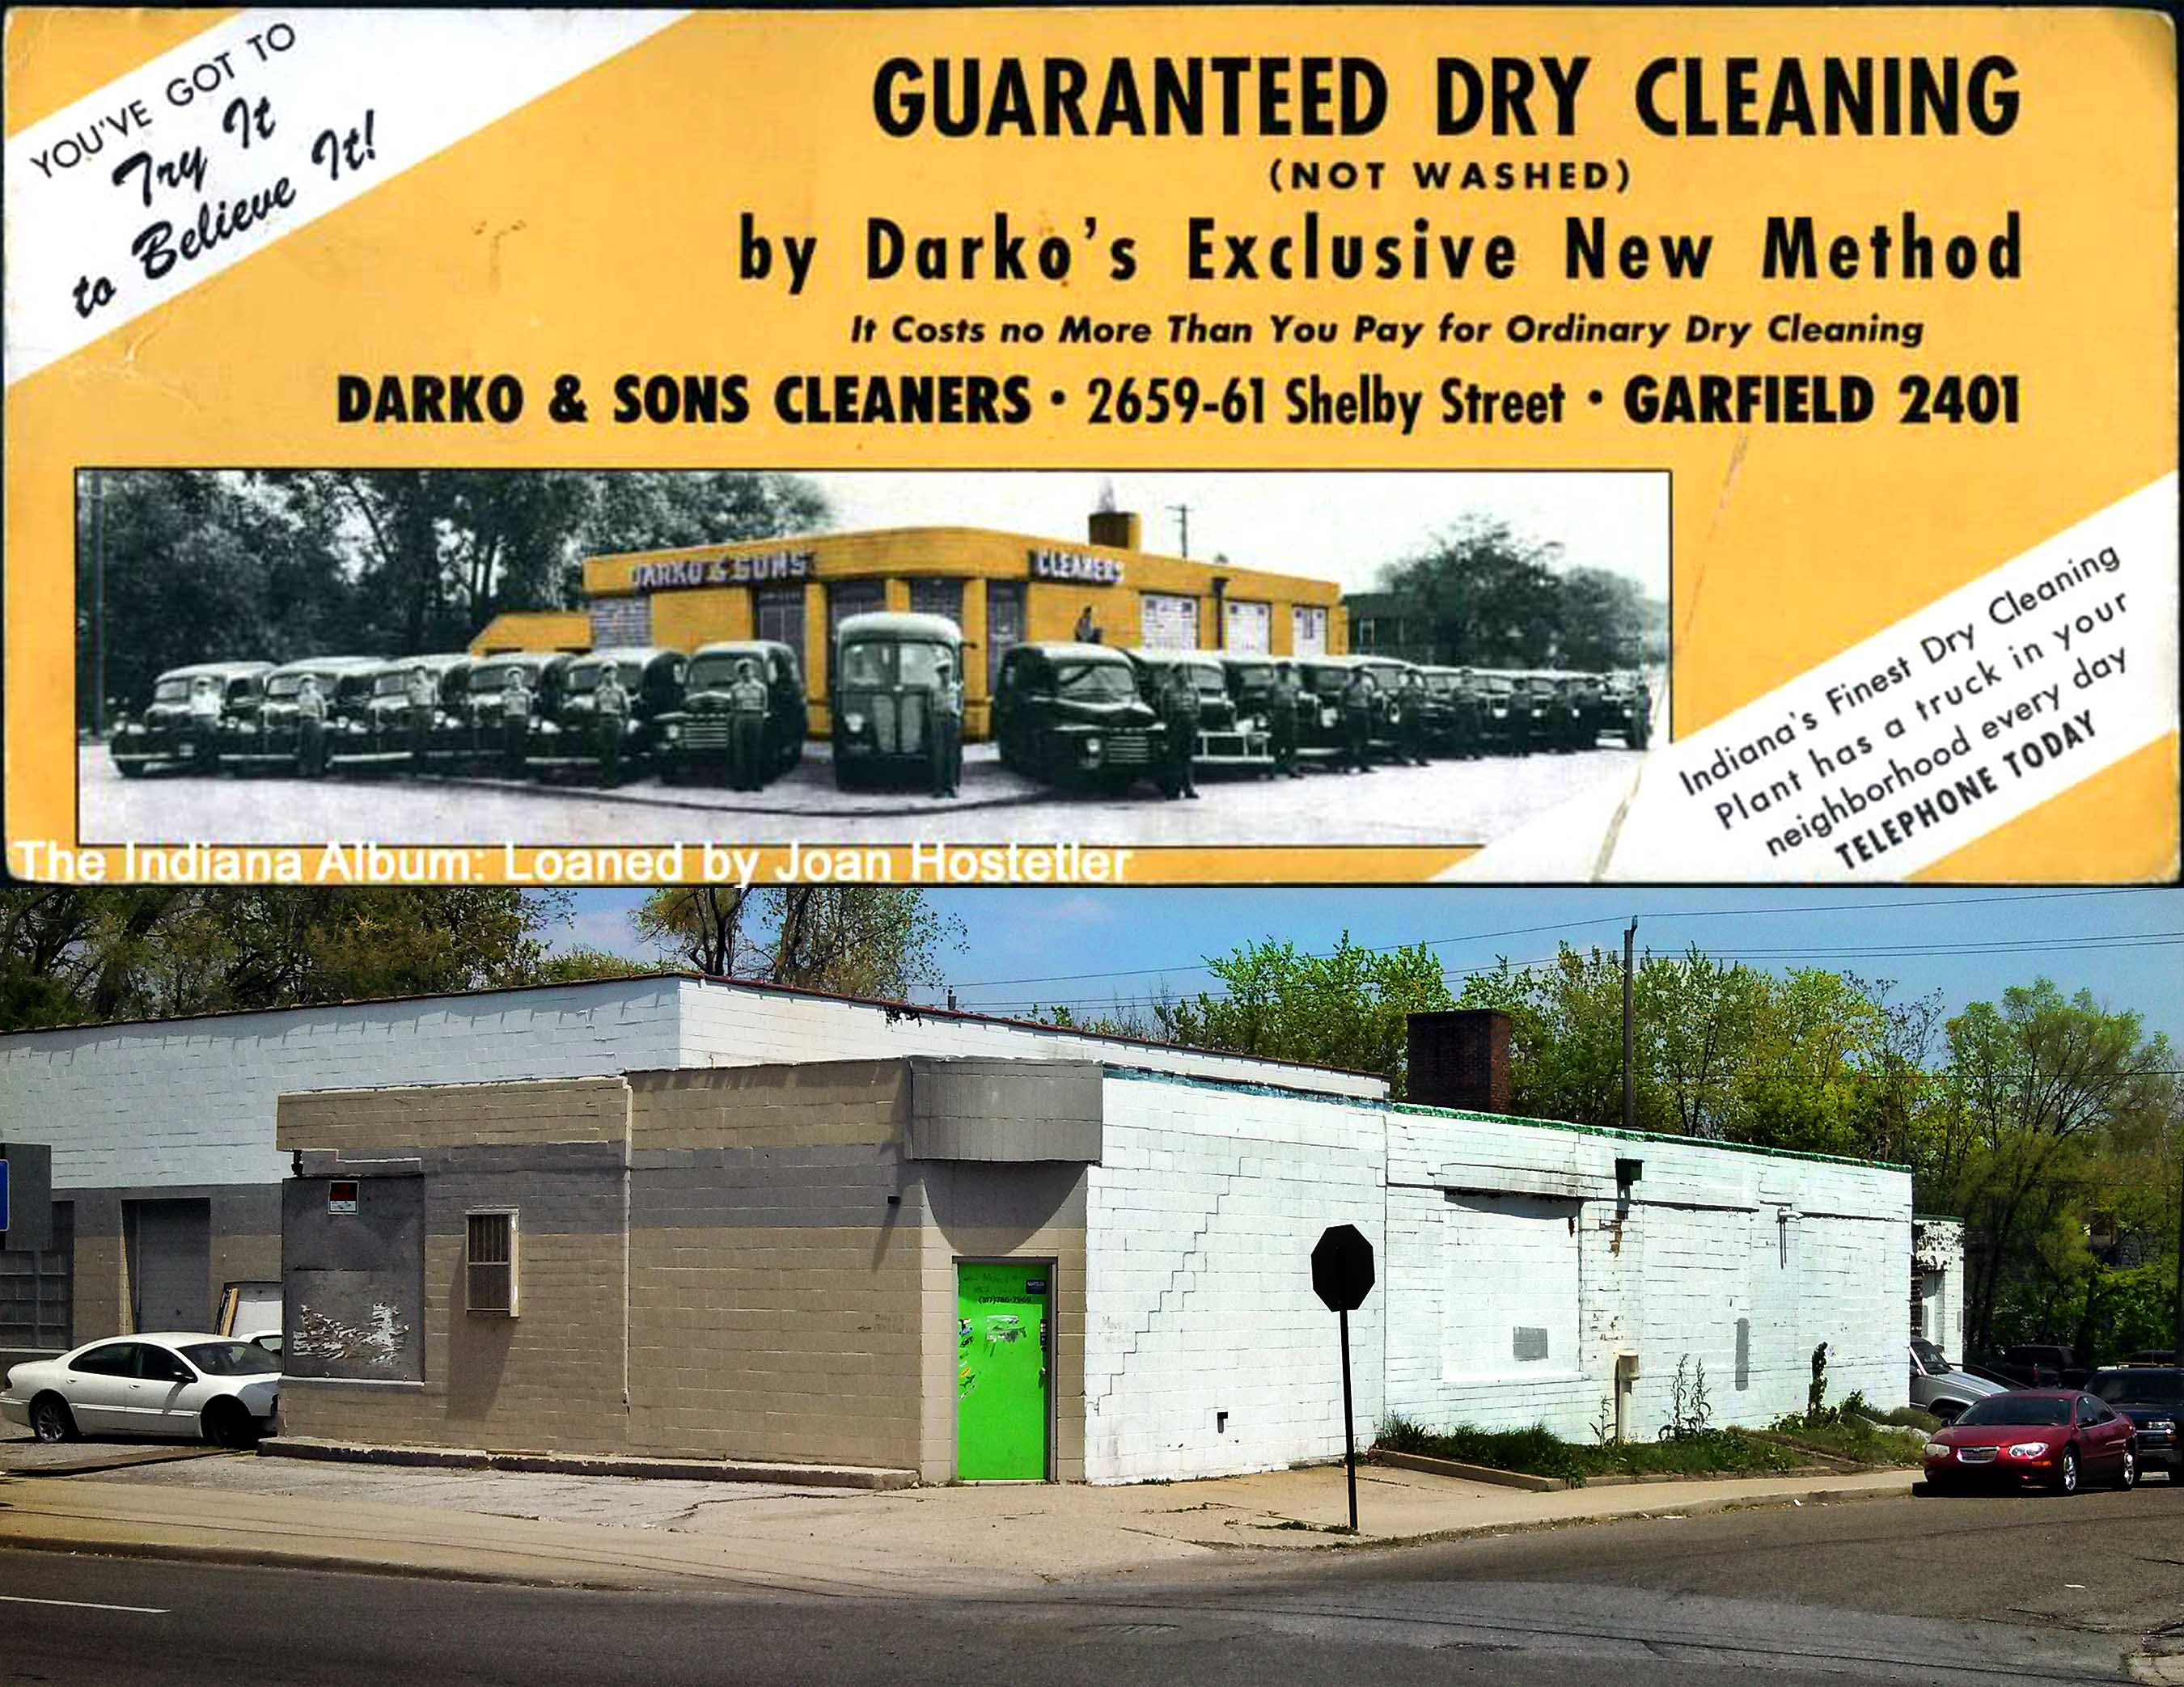 Indianapolis Then and Now: Darko and Sons Cleaners, 2659-61 Shelby Street